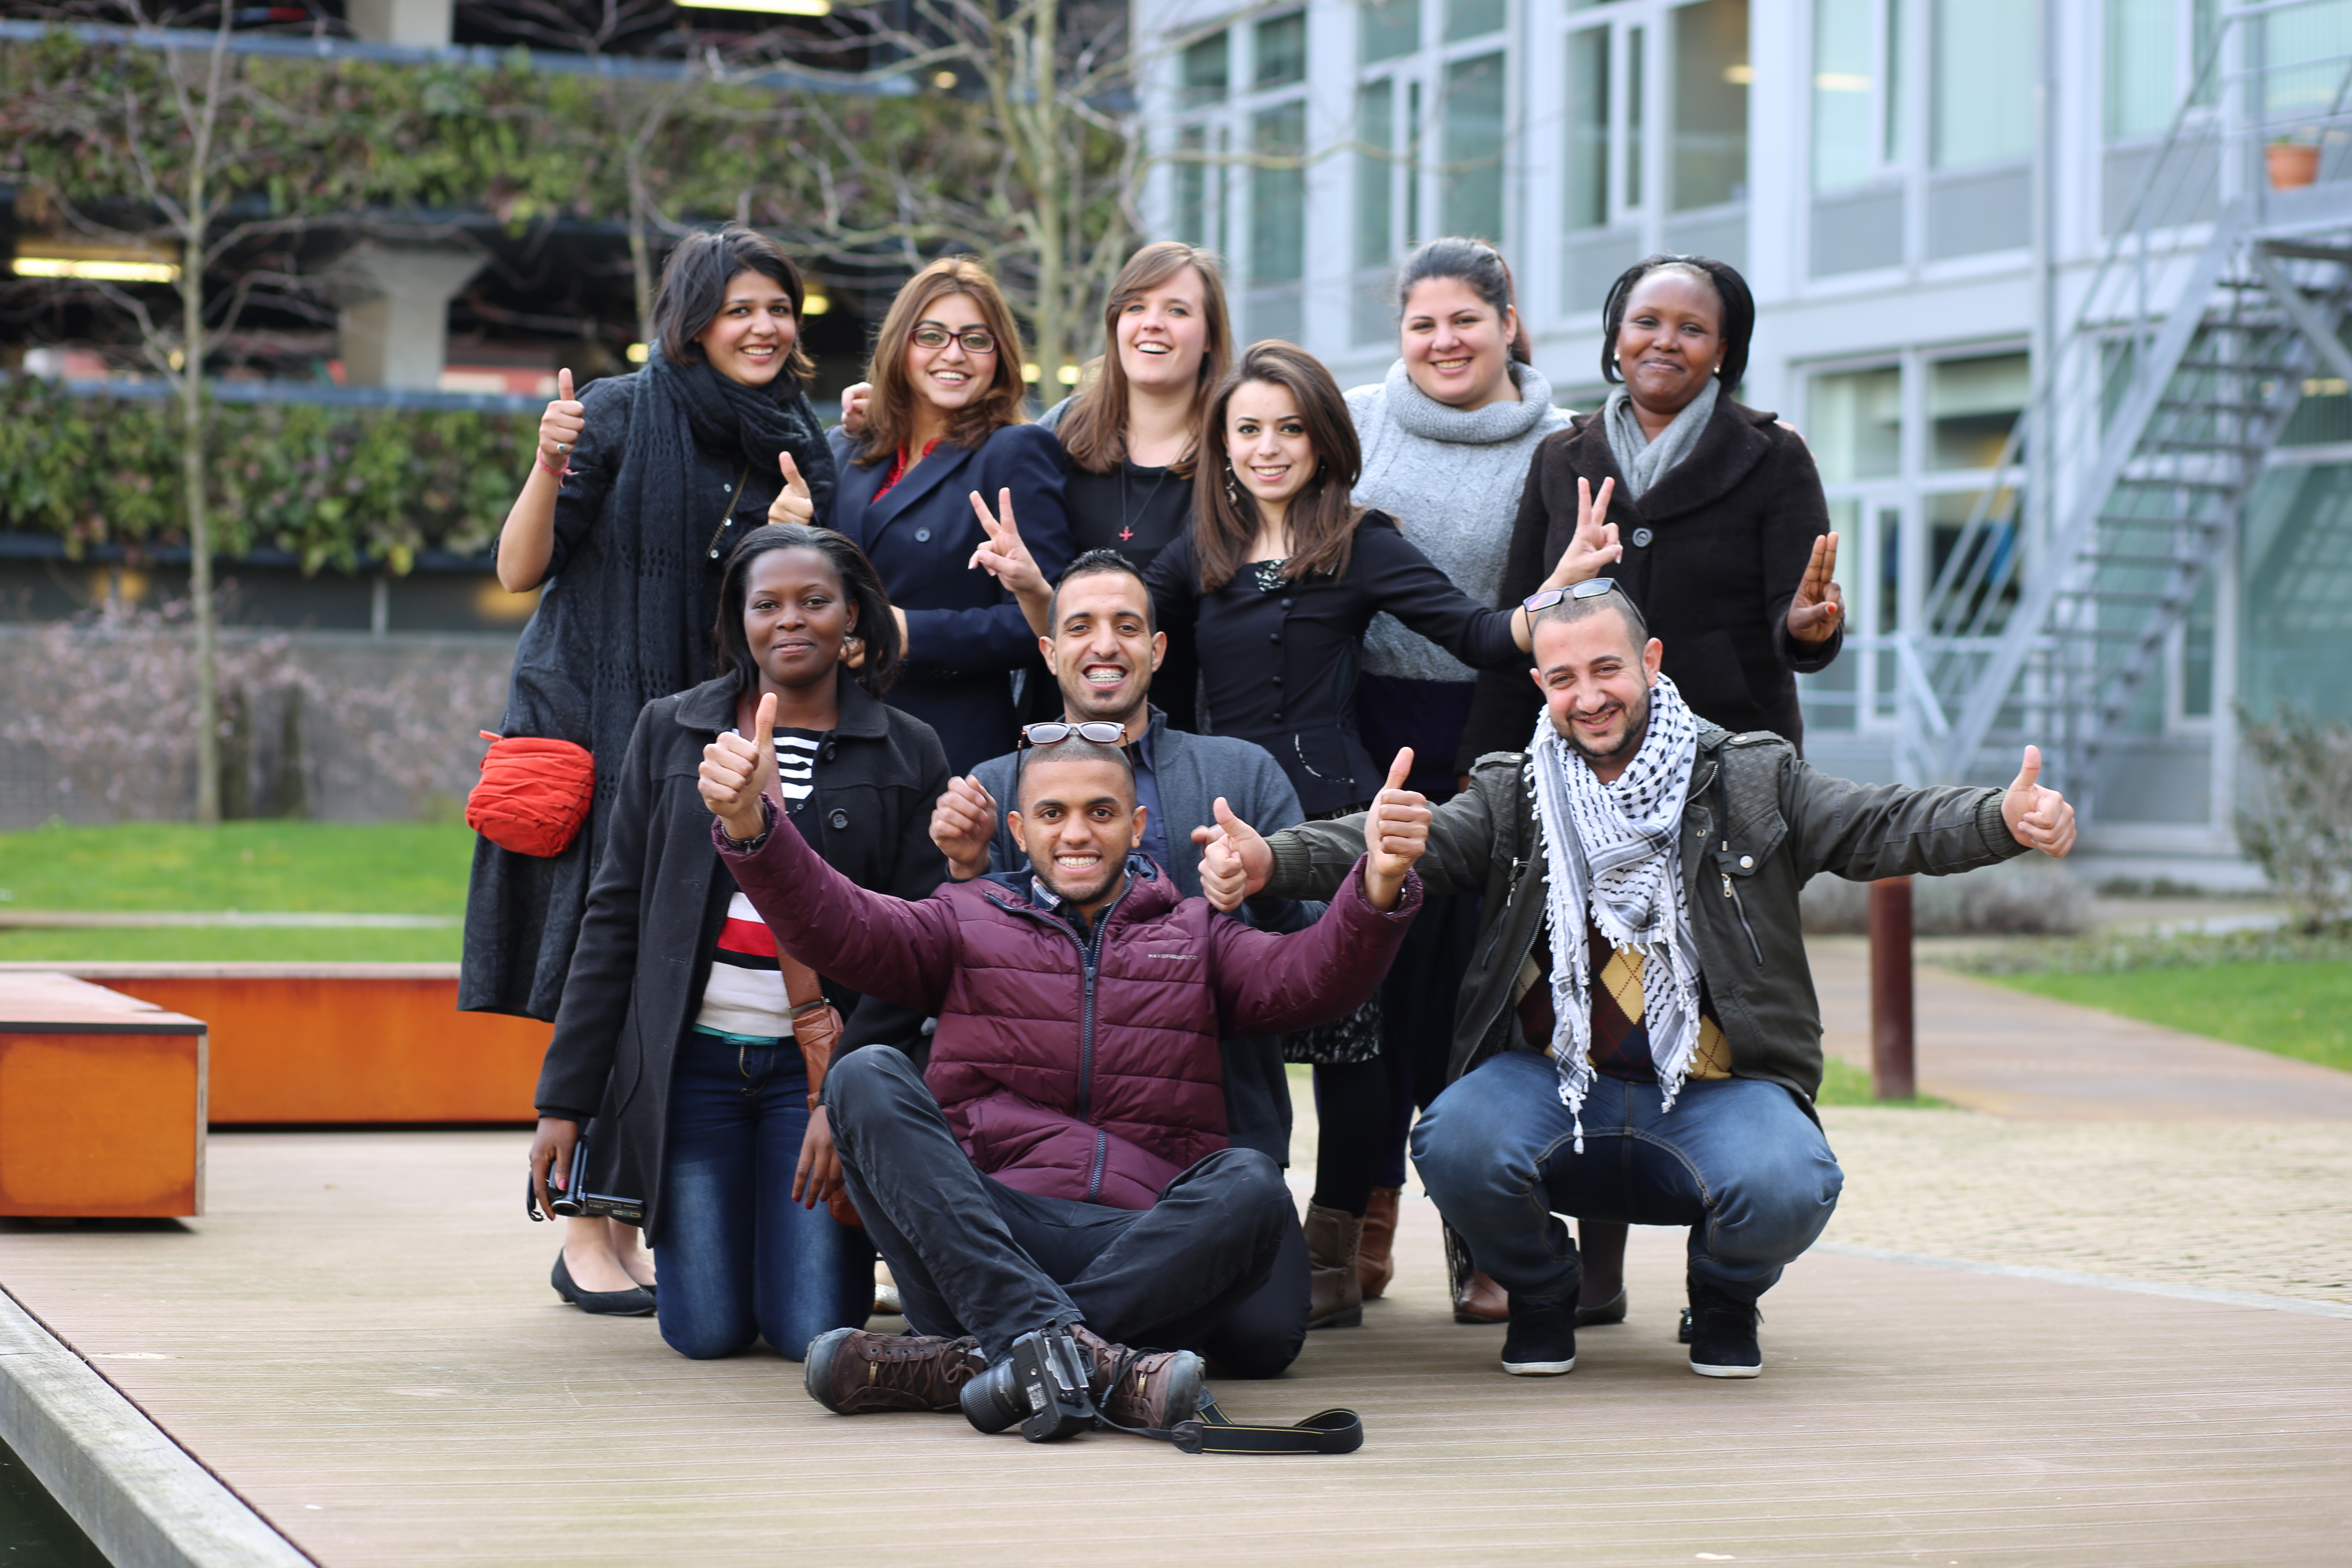 Place: Training of Advocates 2015, The Hague - The Netherlands. Description: Young advocates and peacebuilders participating in the International Training of Advocates, where the participants were trained to influence discussions around peace and security nationally and internationally. Photo taken by: Emad Karim.